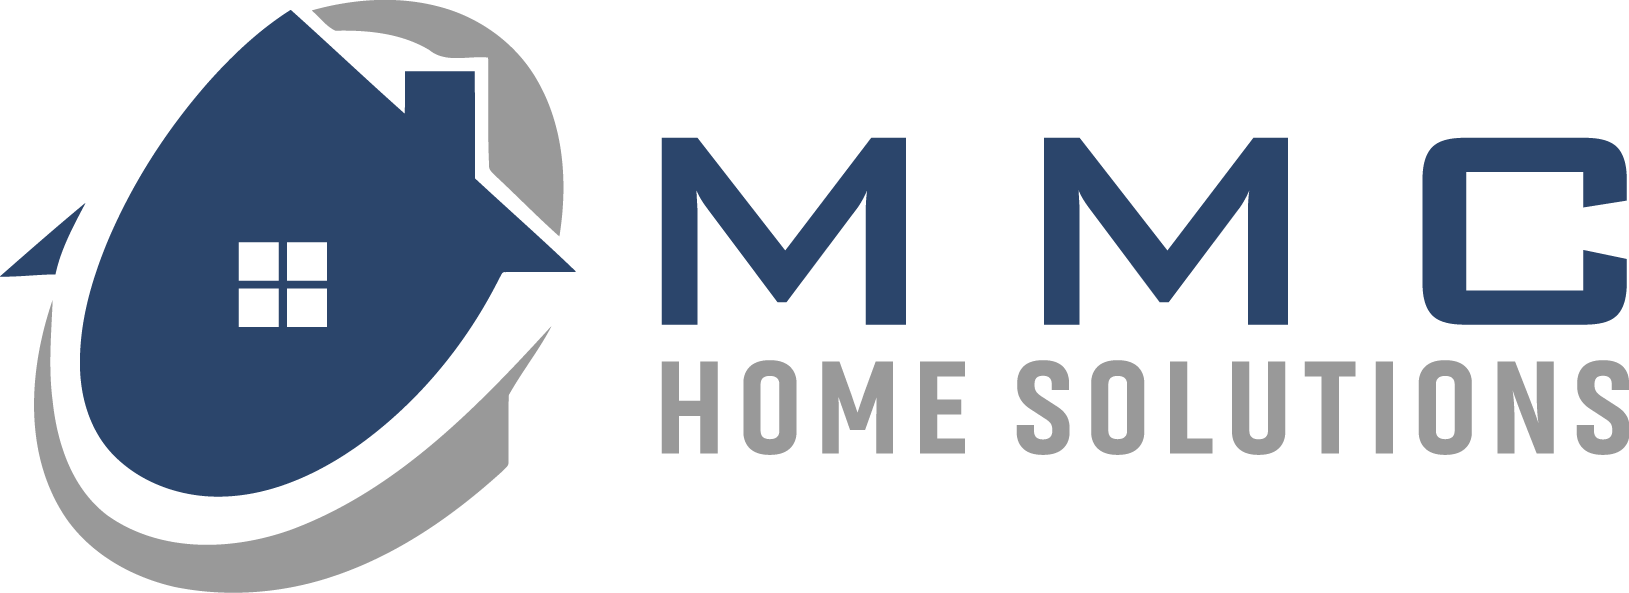 MMC Home Solutions, LLC  logo